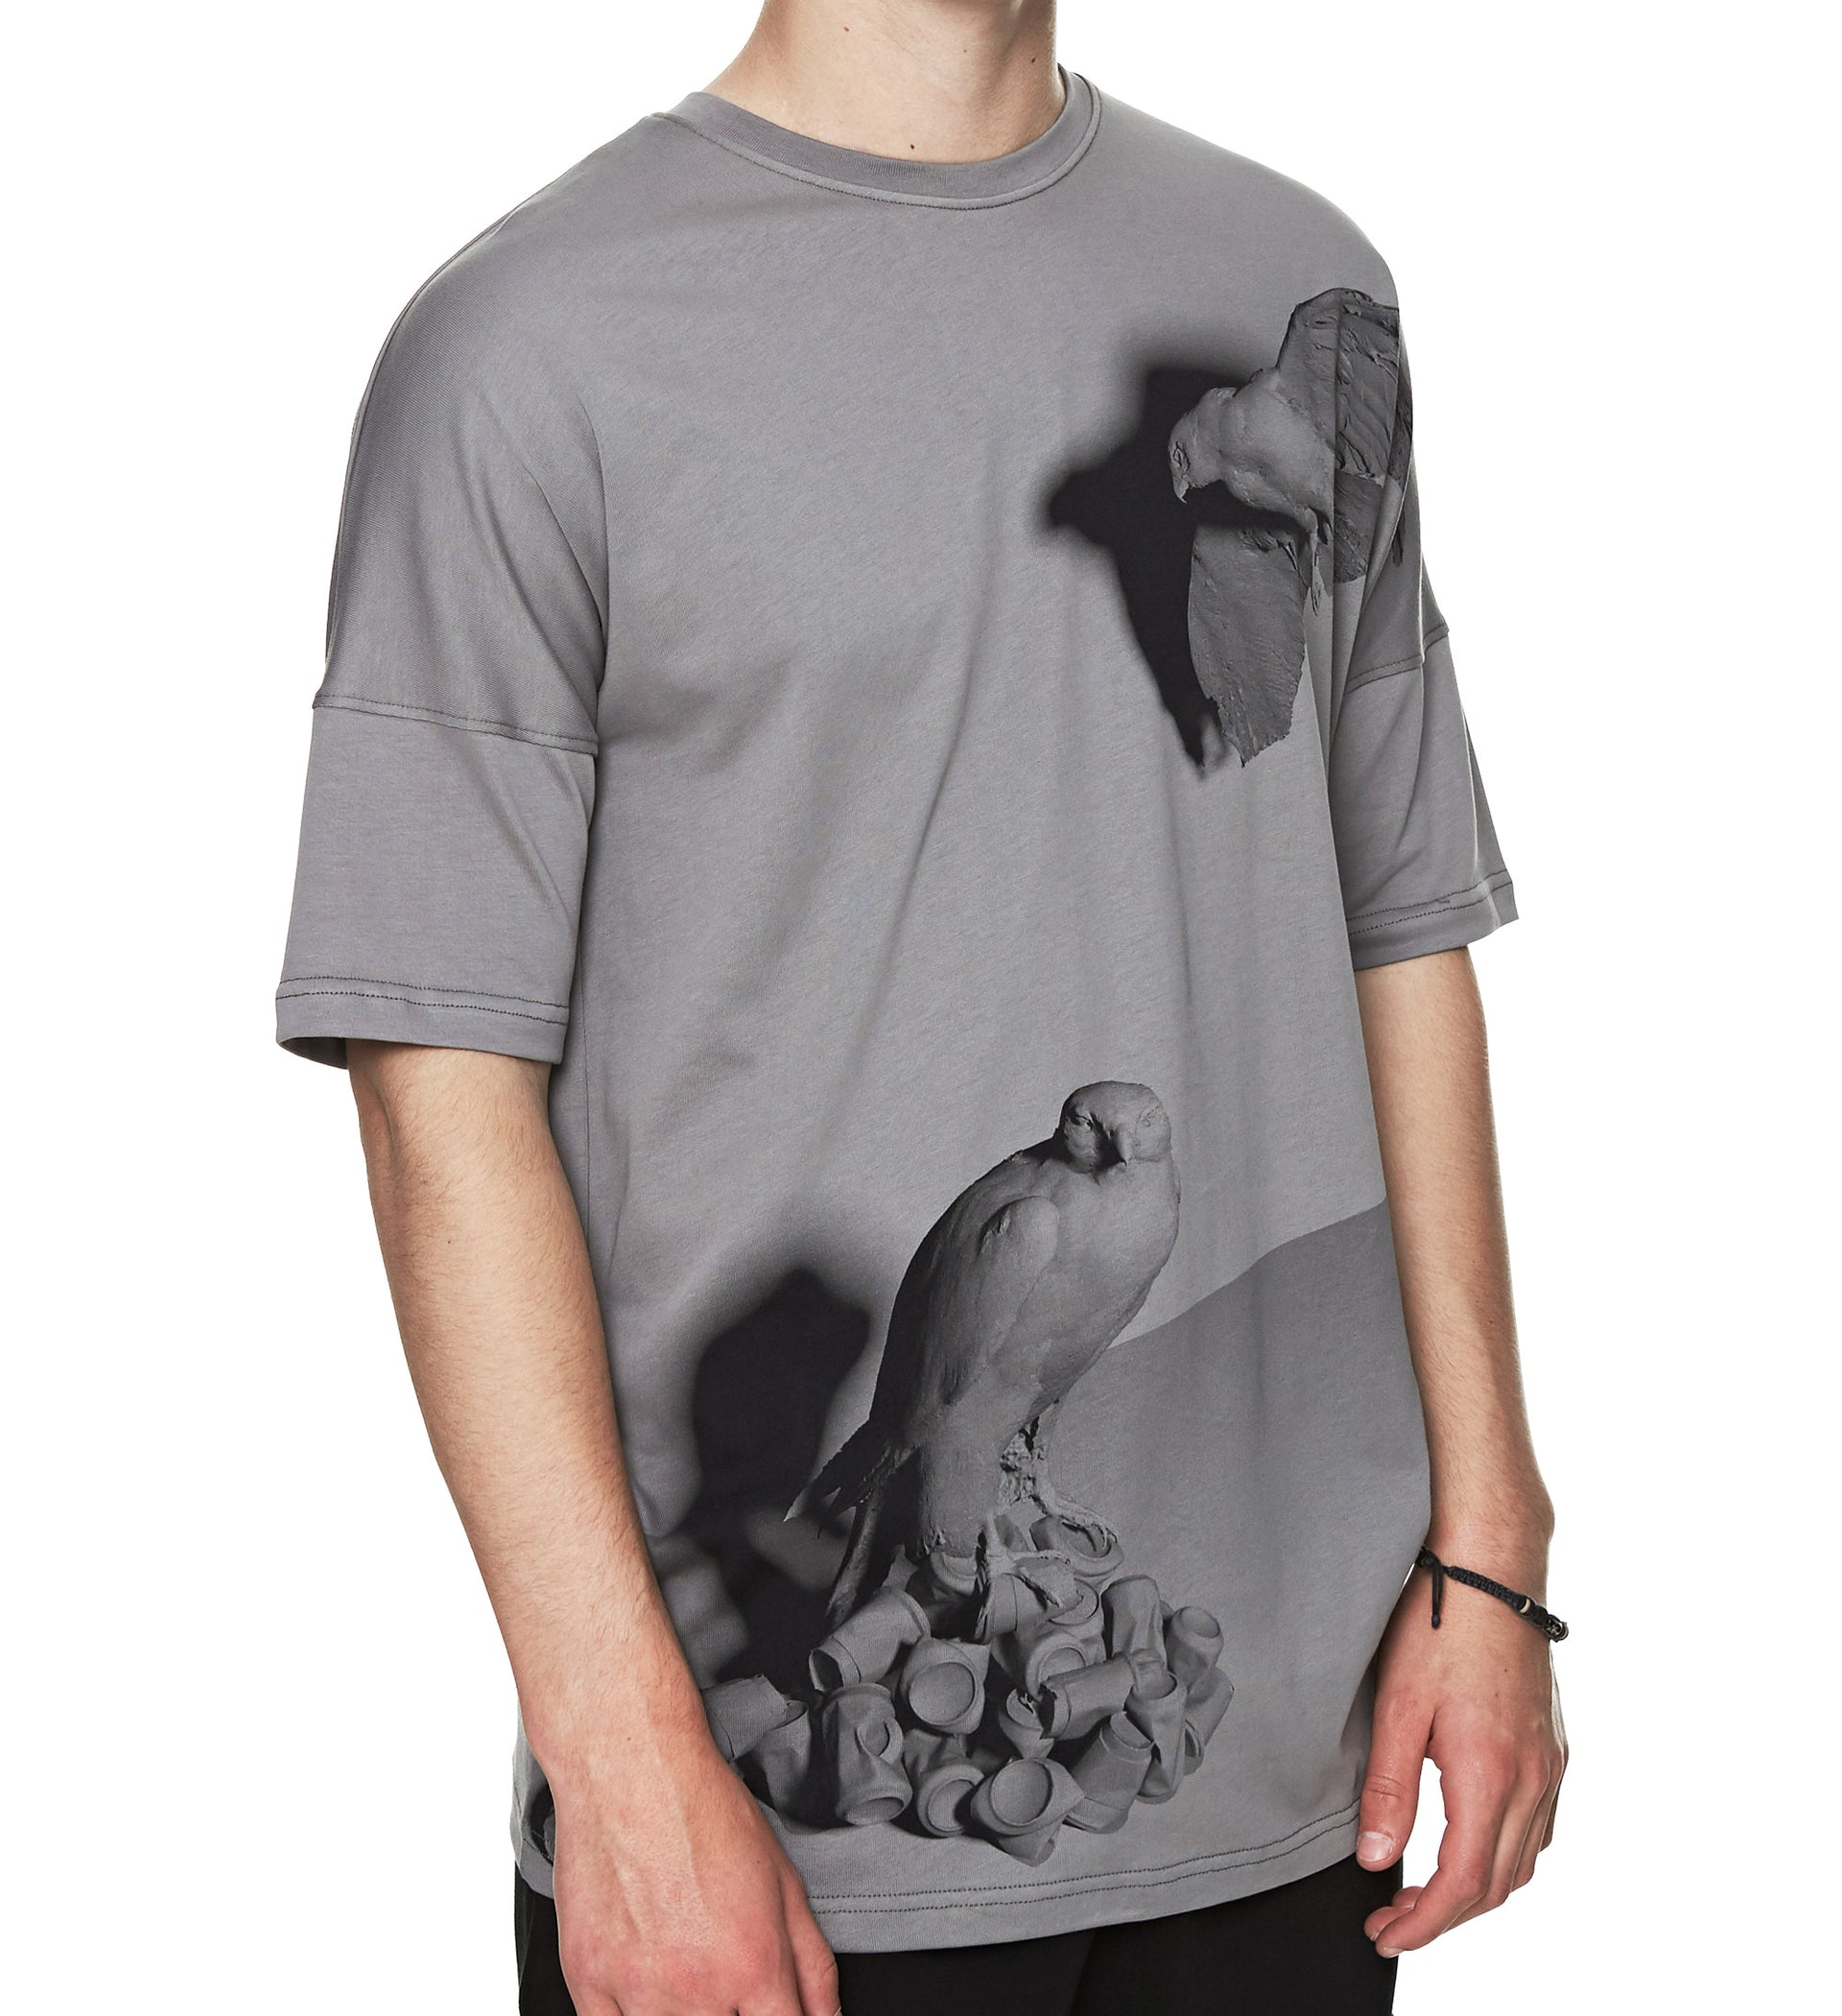 This Is Not Clothing - PARADISE LOST VI T-shirt